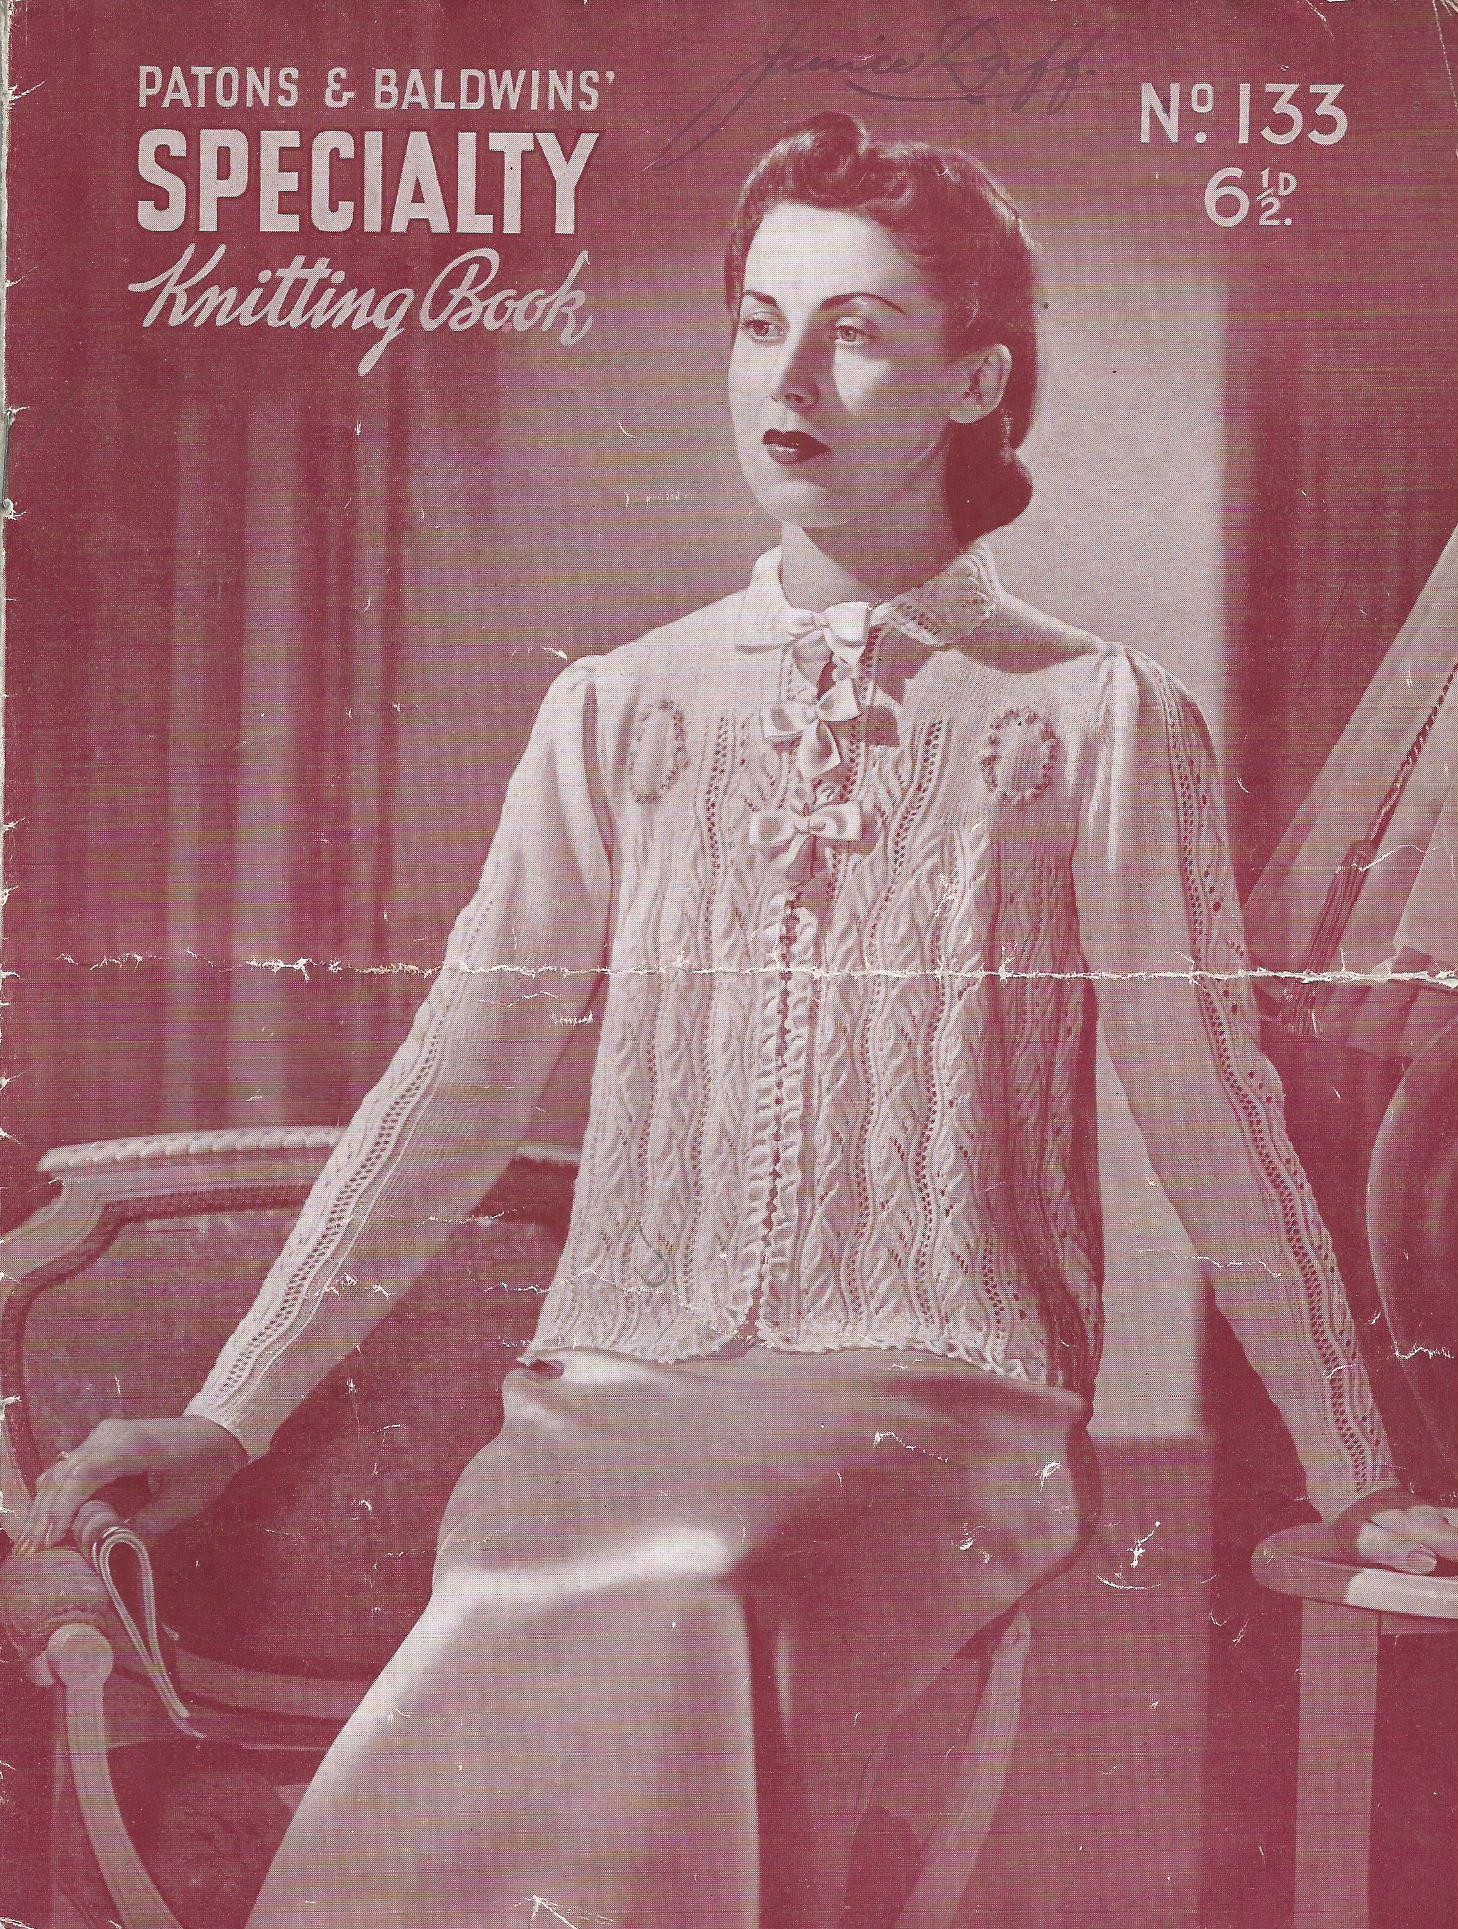 Patons Knitting Pattern Archive : Patons and Baldwins Specialty Knitting Book No.133 Knitting and Croche...